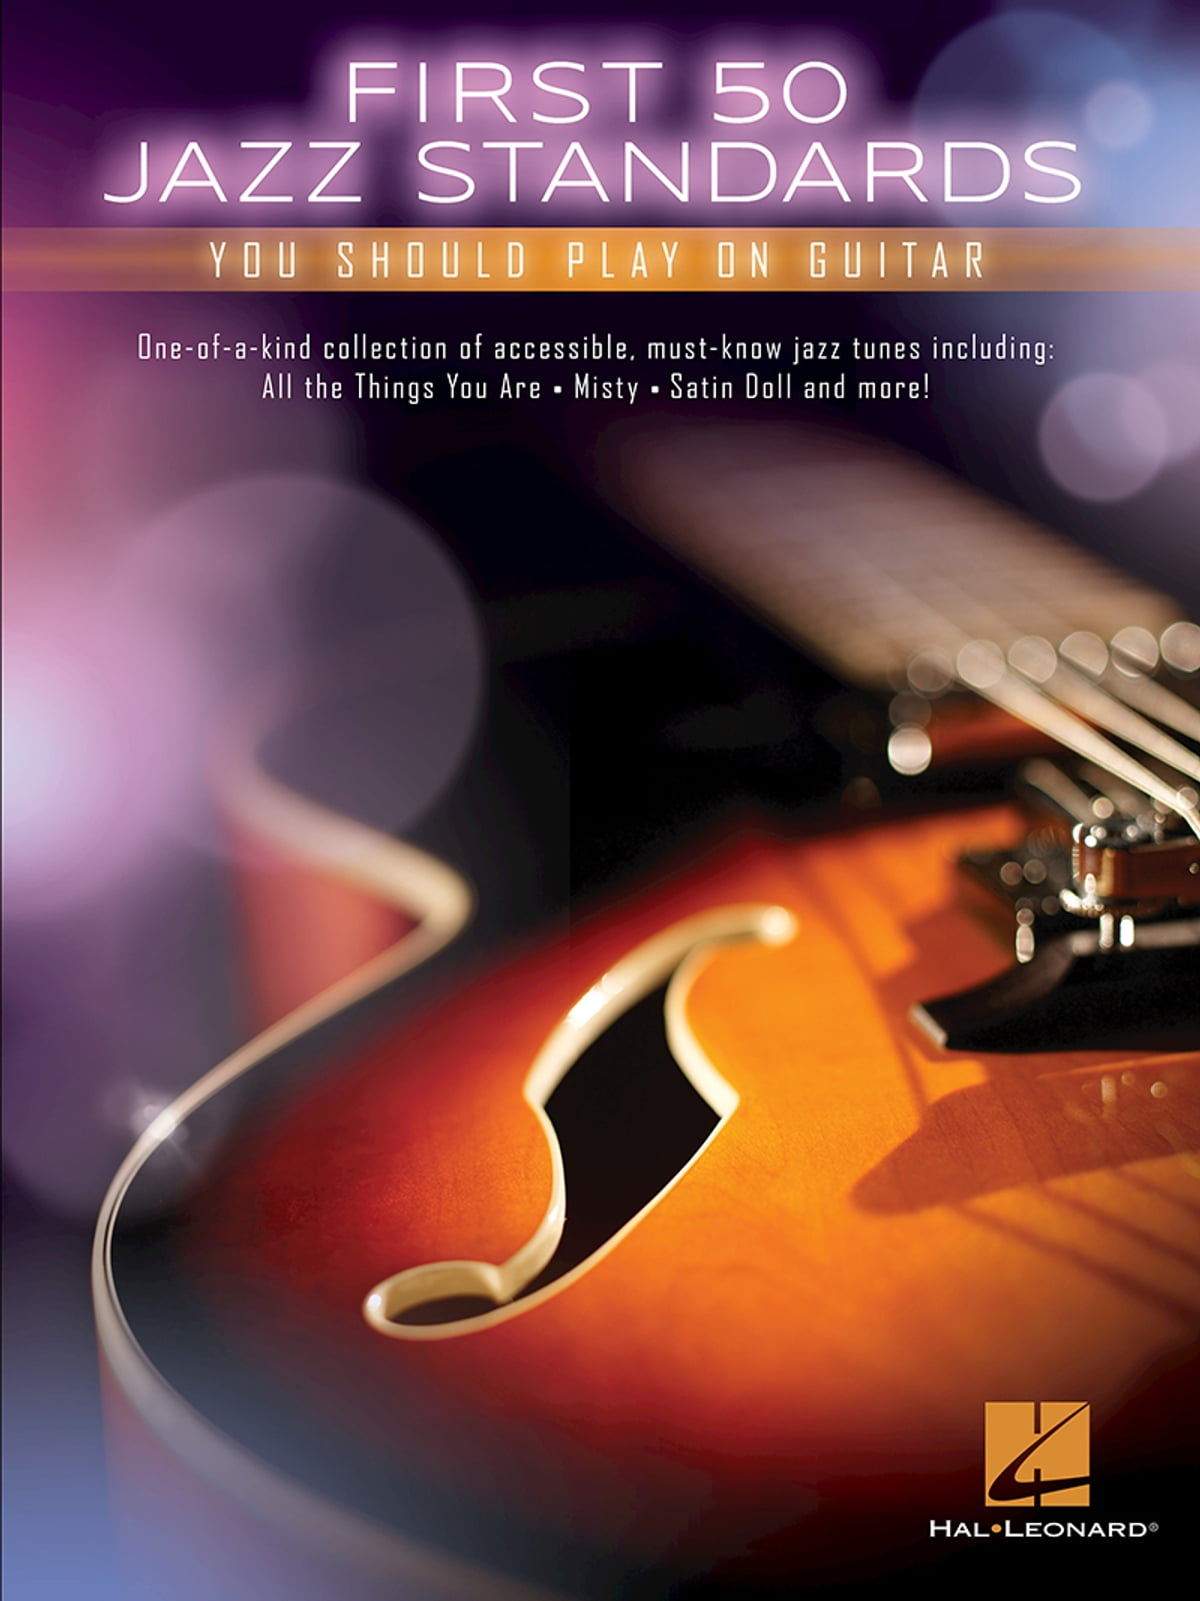 First 50 Jazz Standards You Should Play on Guitar ebook by Hal Leonard  Corp  - Rakuten Kobo